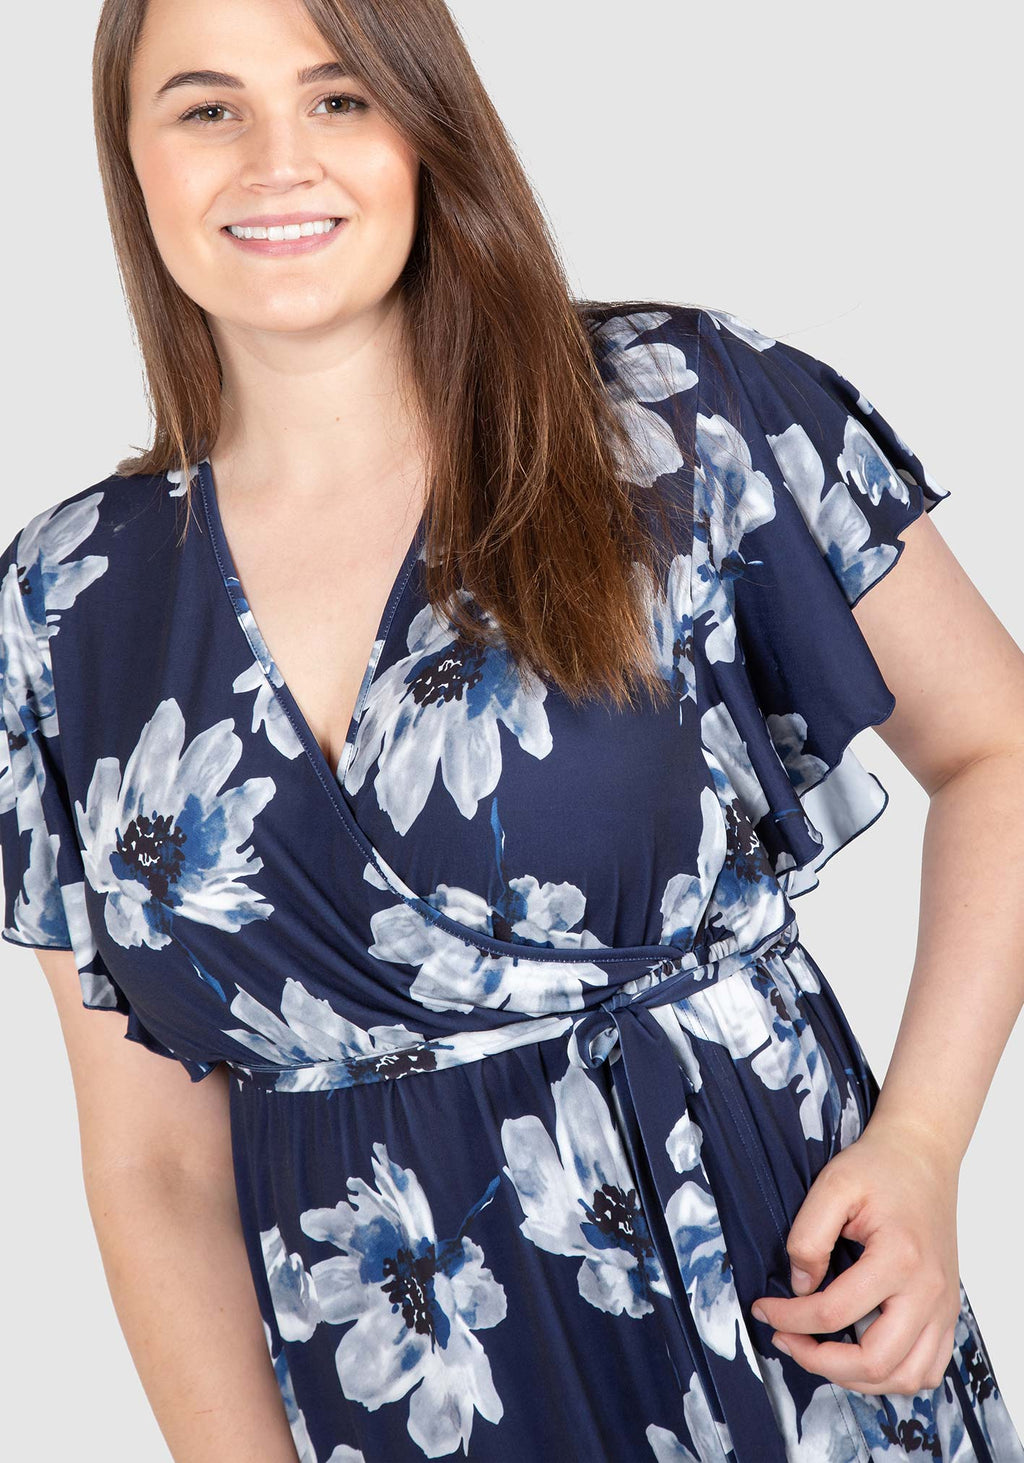 Florence Floral Knit Wrap Knit Dress - Navy floral print